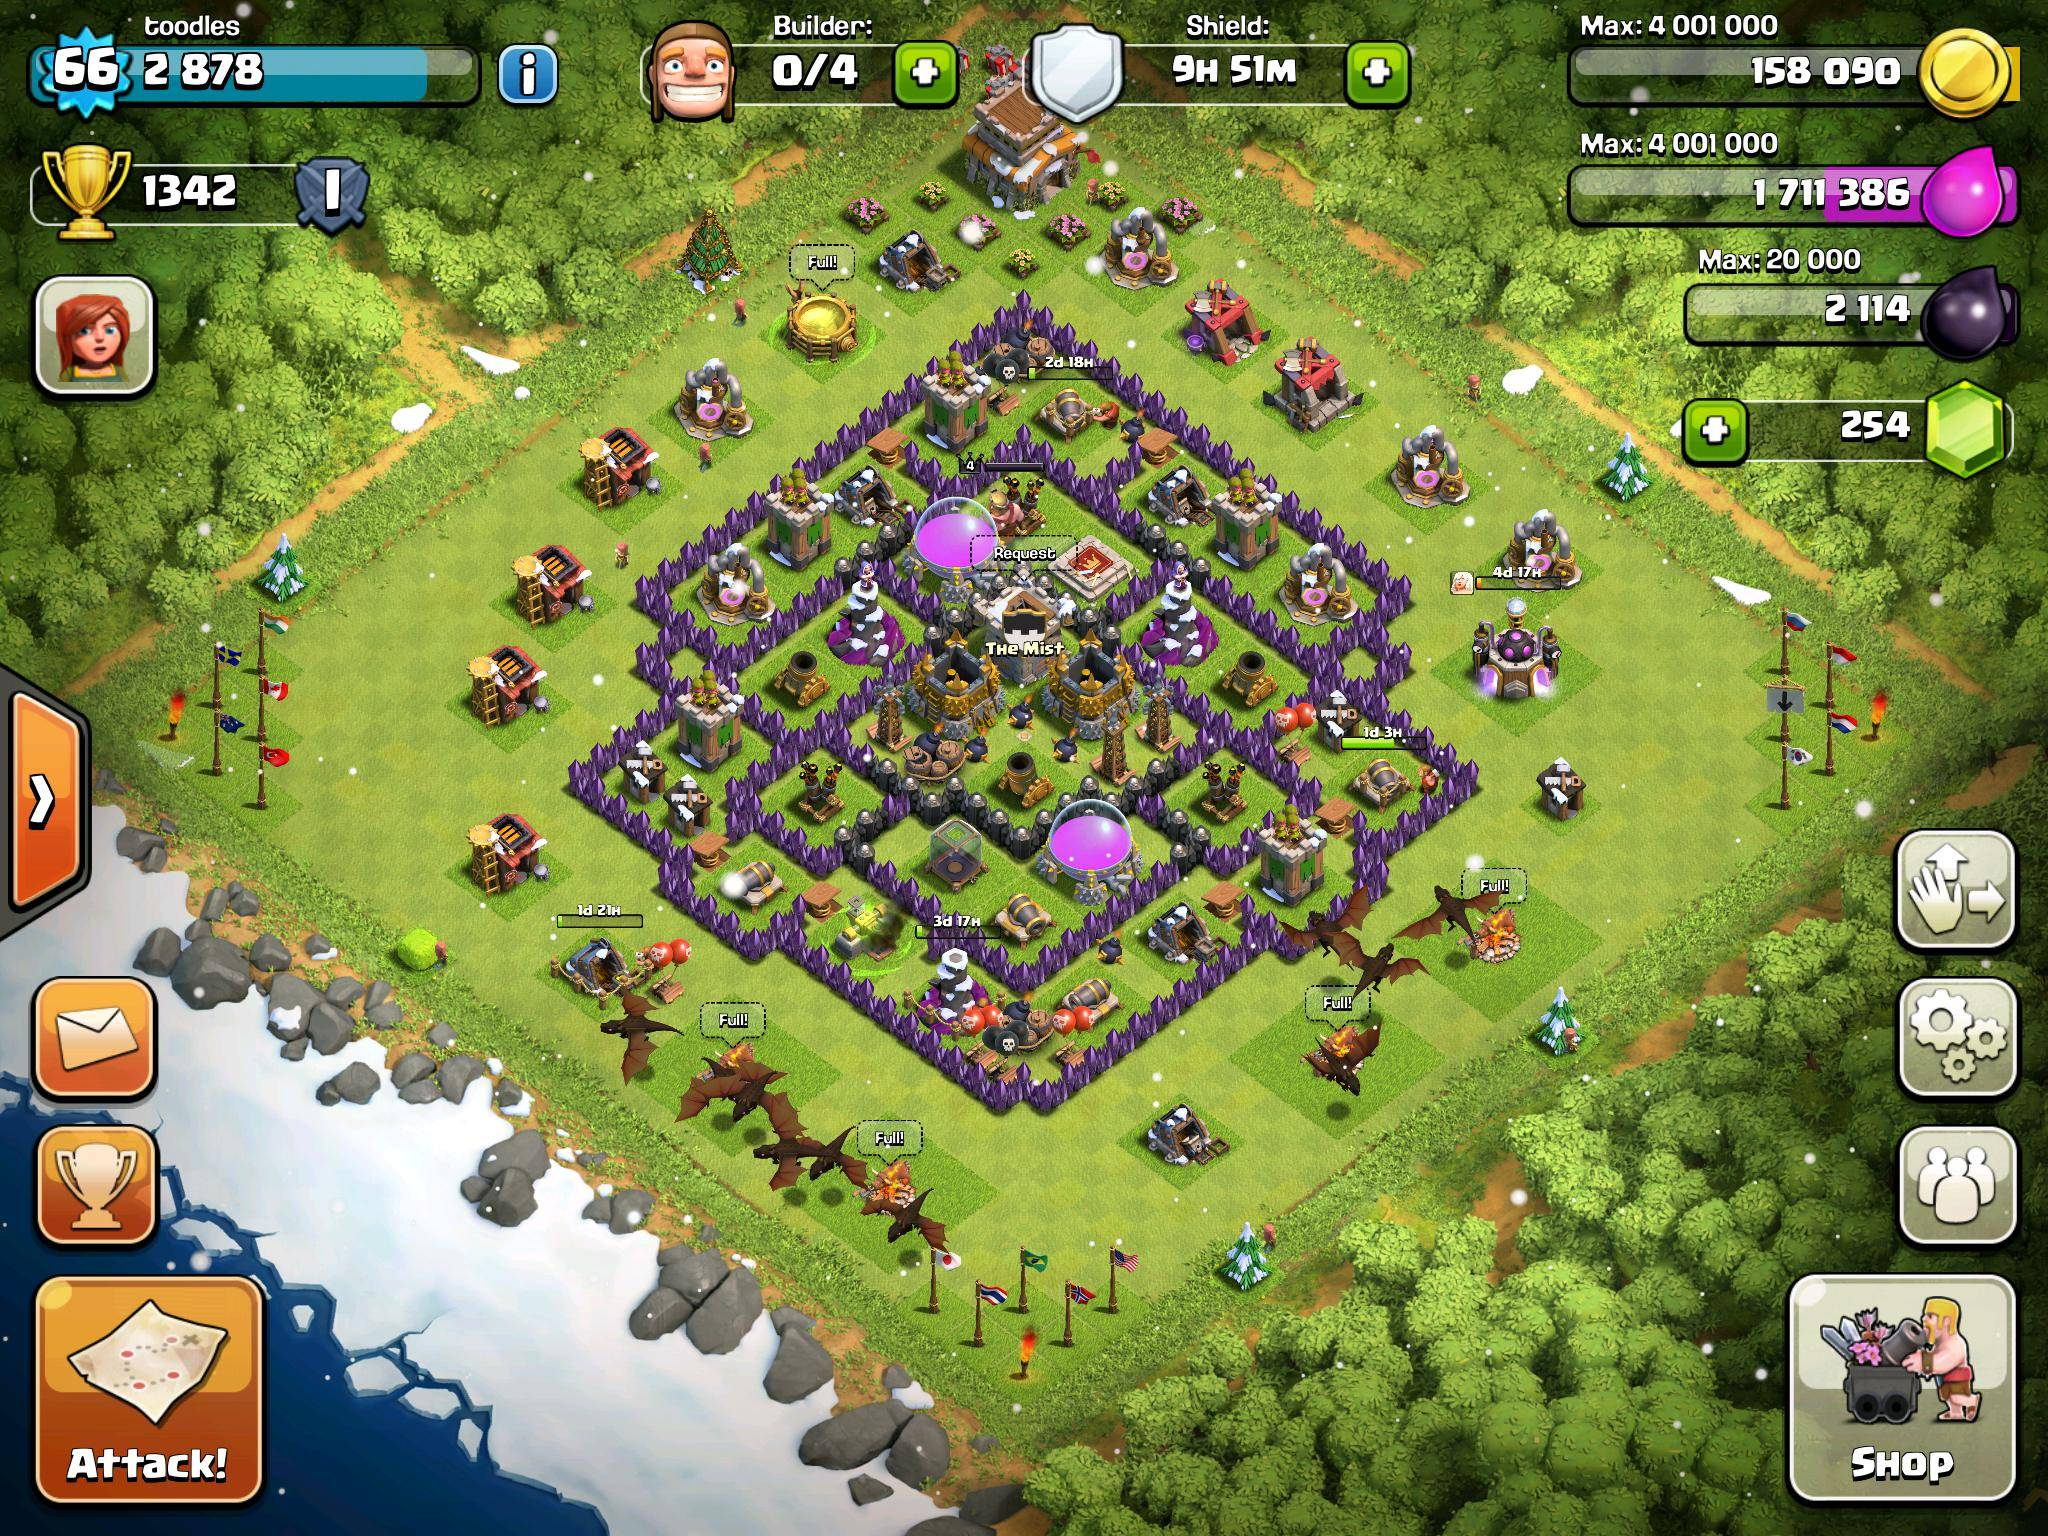 Town Hall Level 8 Farming Base